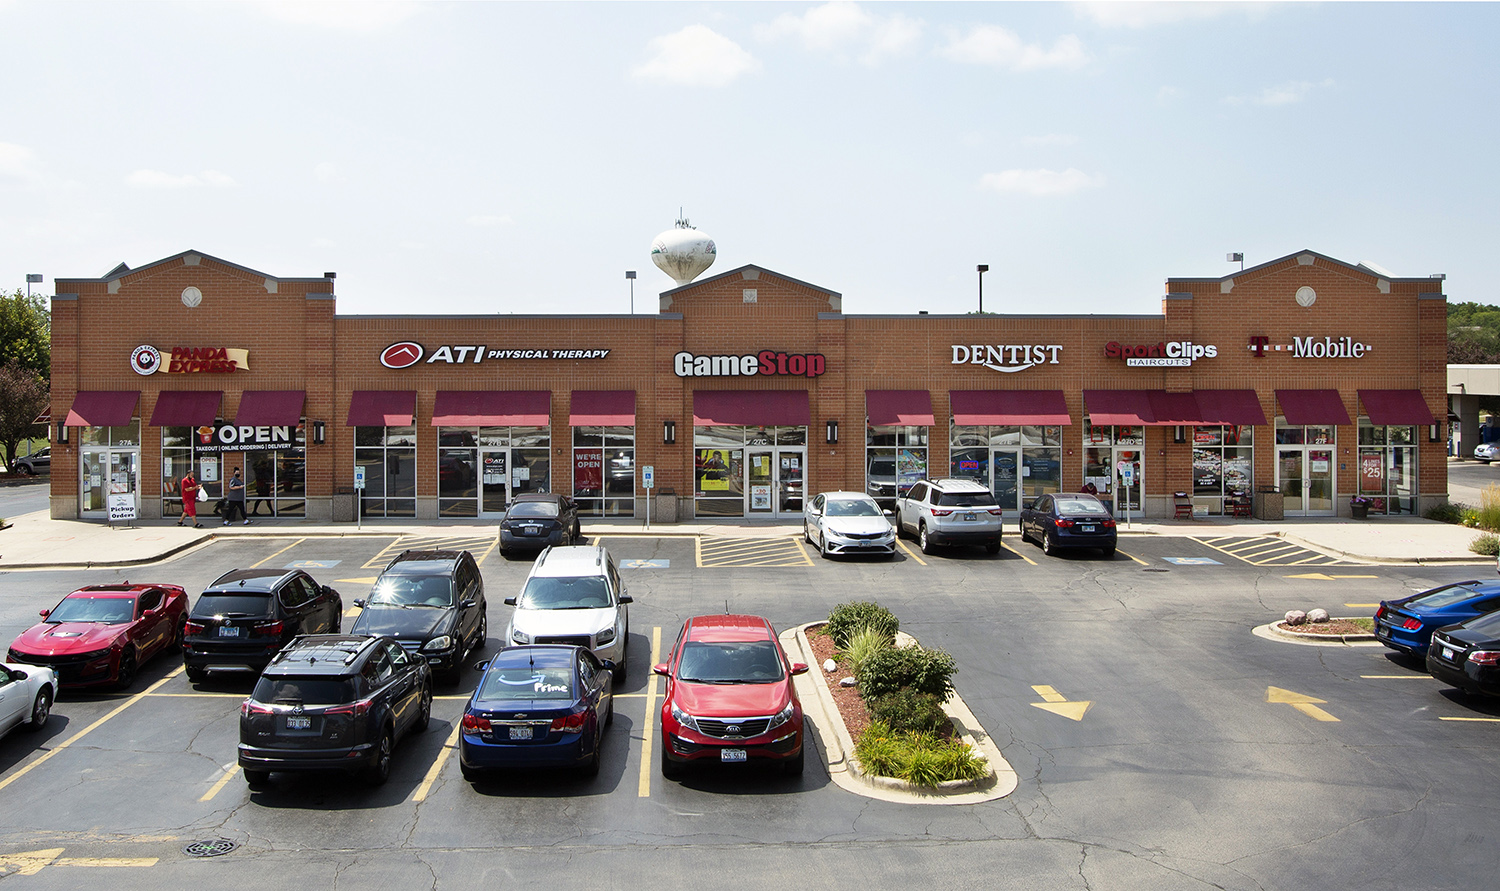 Hanley Investment Group Arranges Sale of Multi-Tenant Retail Pad Building Shadow-Anchored by Home Depot in Chicago Metro for $4 Million